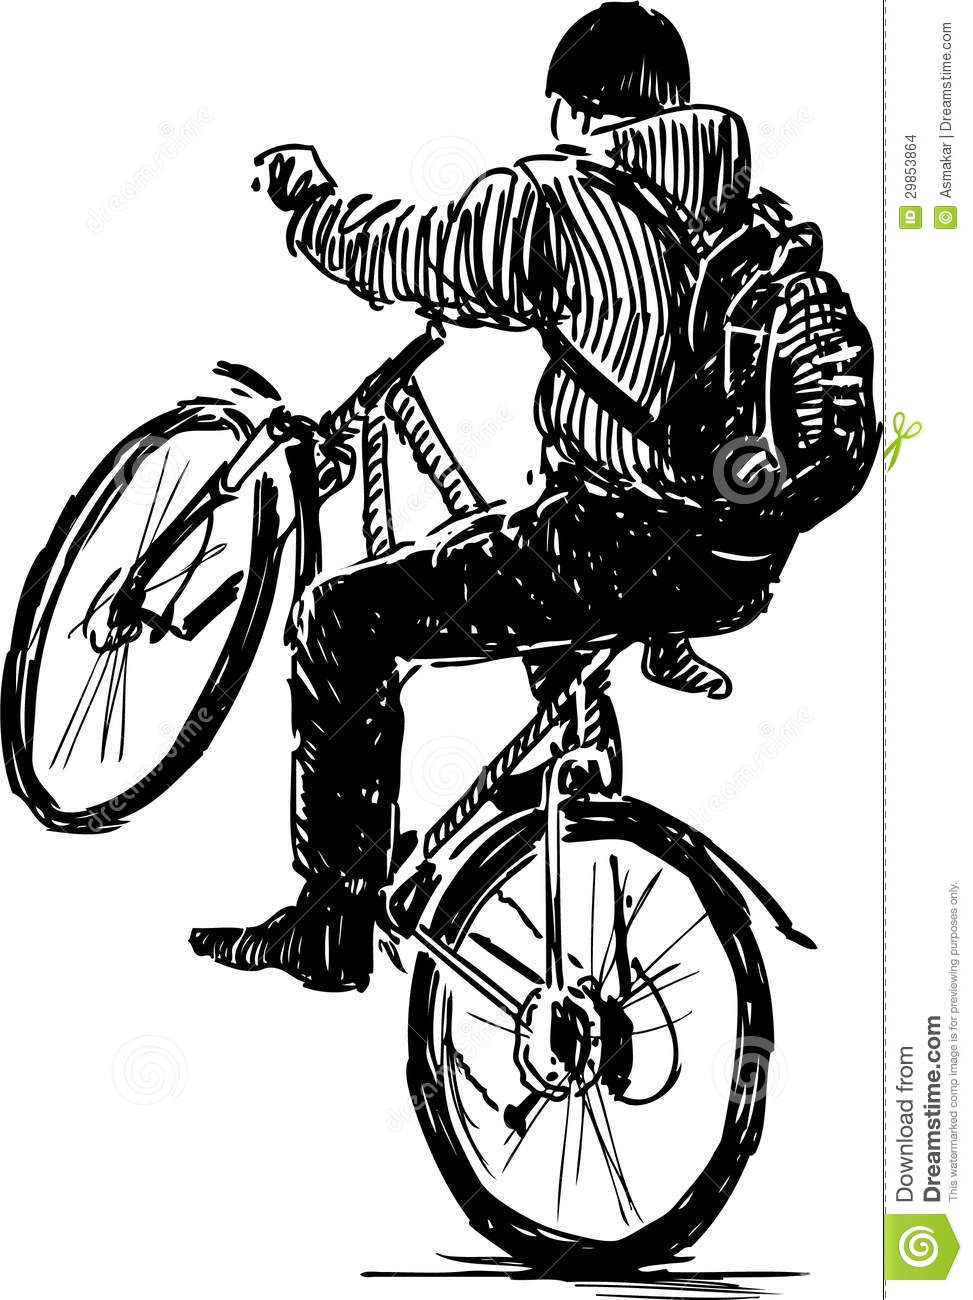 Cycliste actif images stock image 29853864 - Cycliste dessin ...